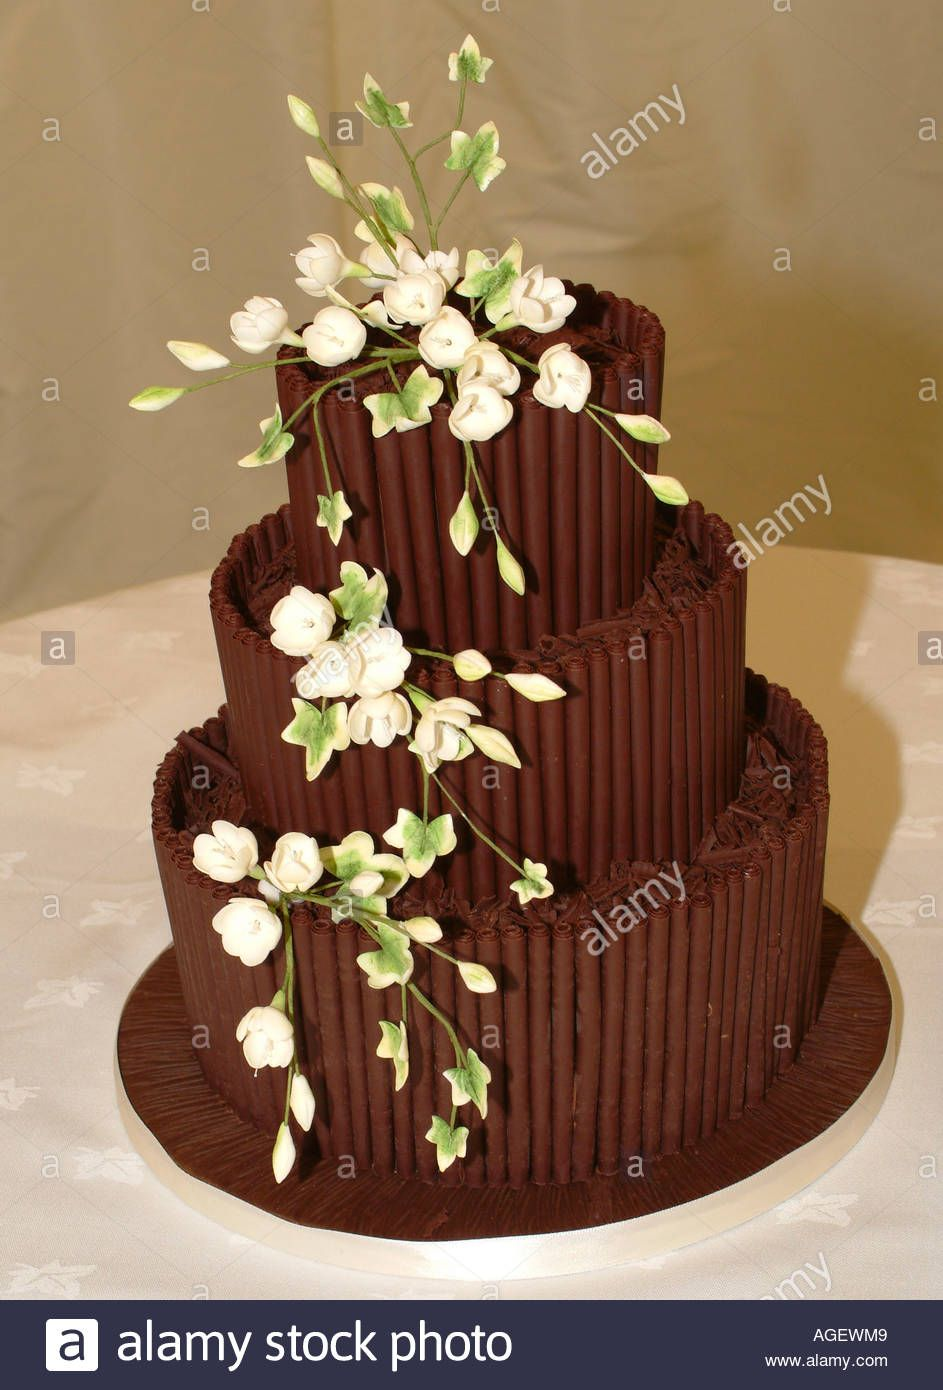 Tiered Chocolate Wedding Cake Decorated With White Edible ...